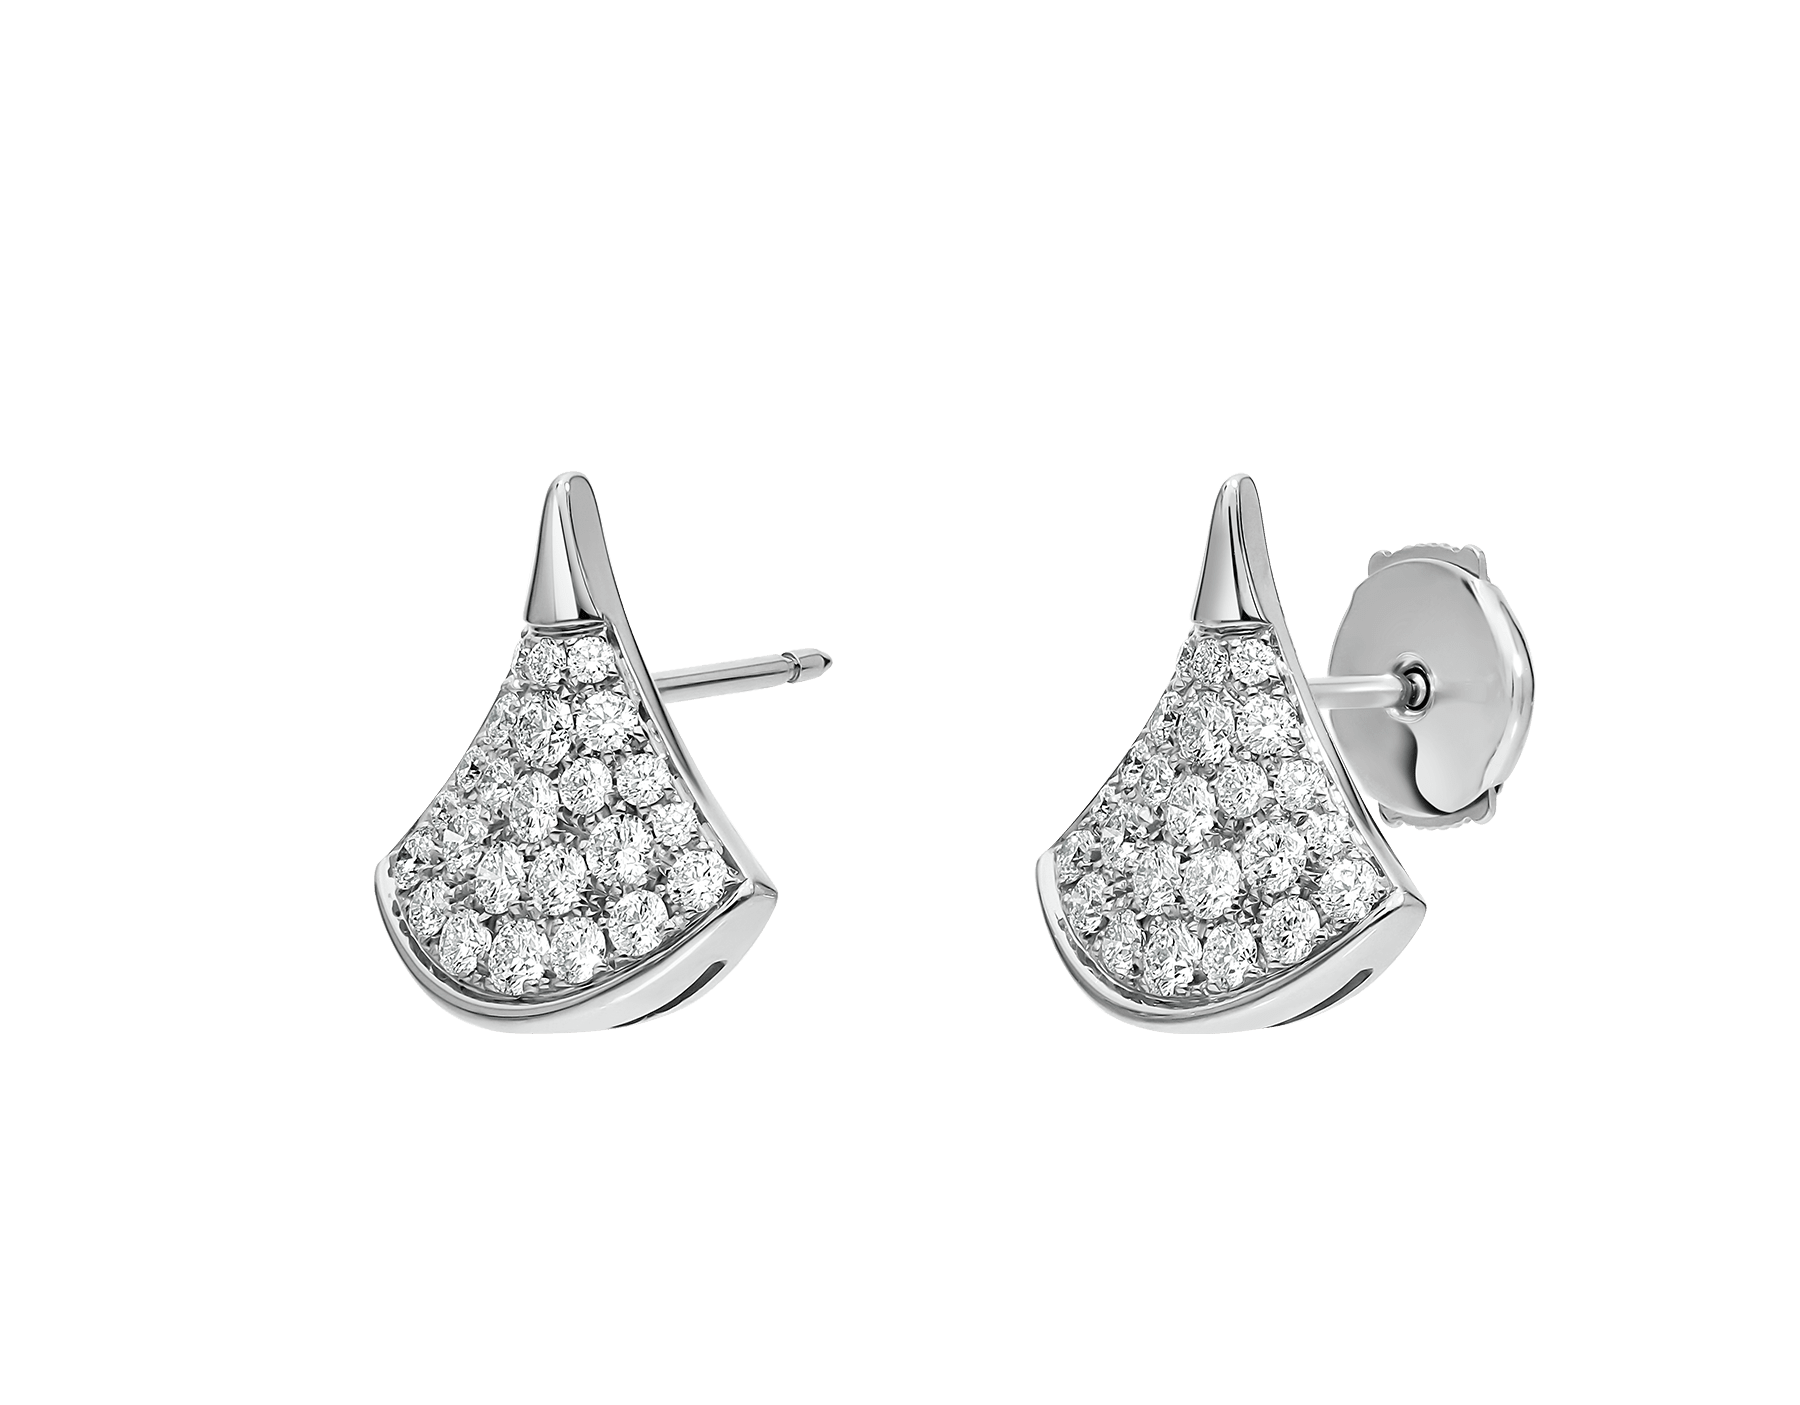 DIVAS' DREAM stud earrings in 18 kt white gold set with pavé diamonds. 352602 image 2